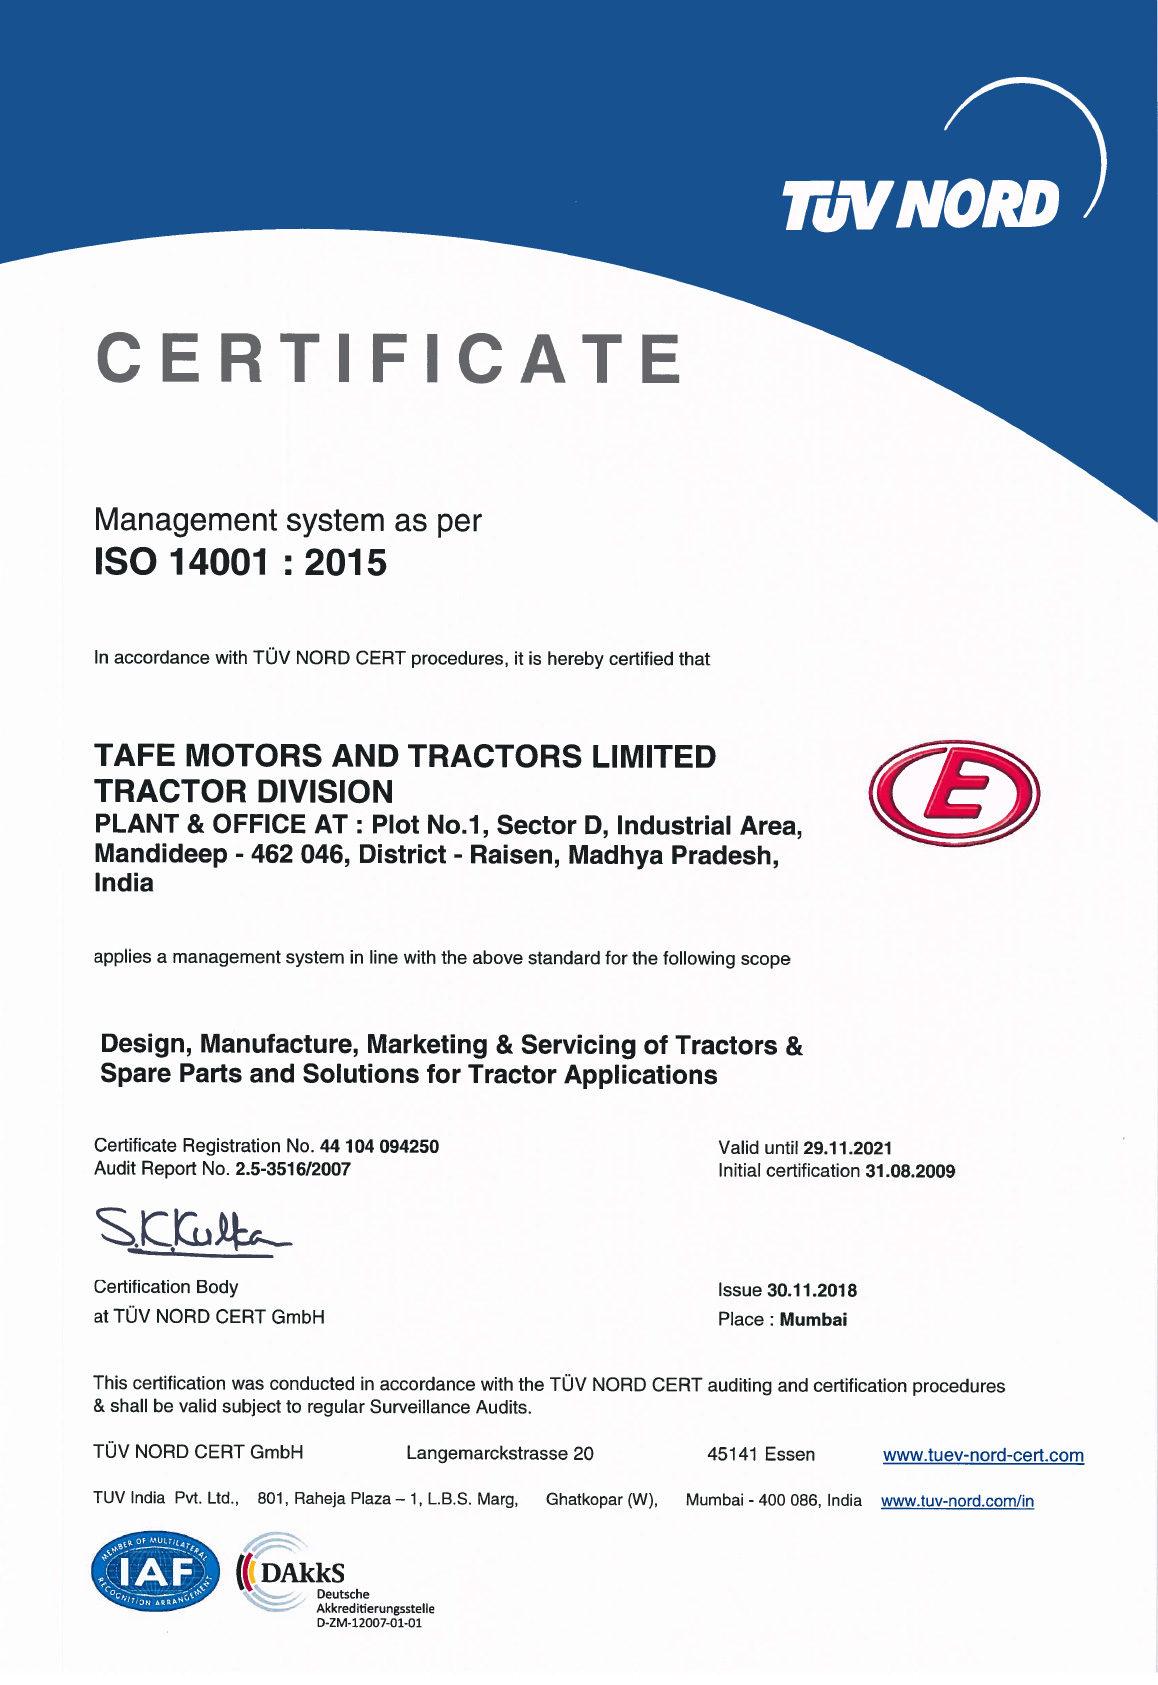 TMTL | Certifications | Eicher Engines | TAFE Motors and